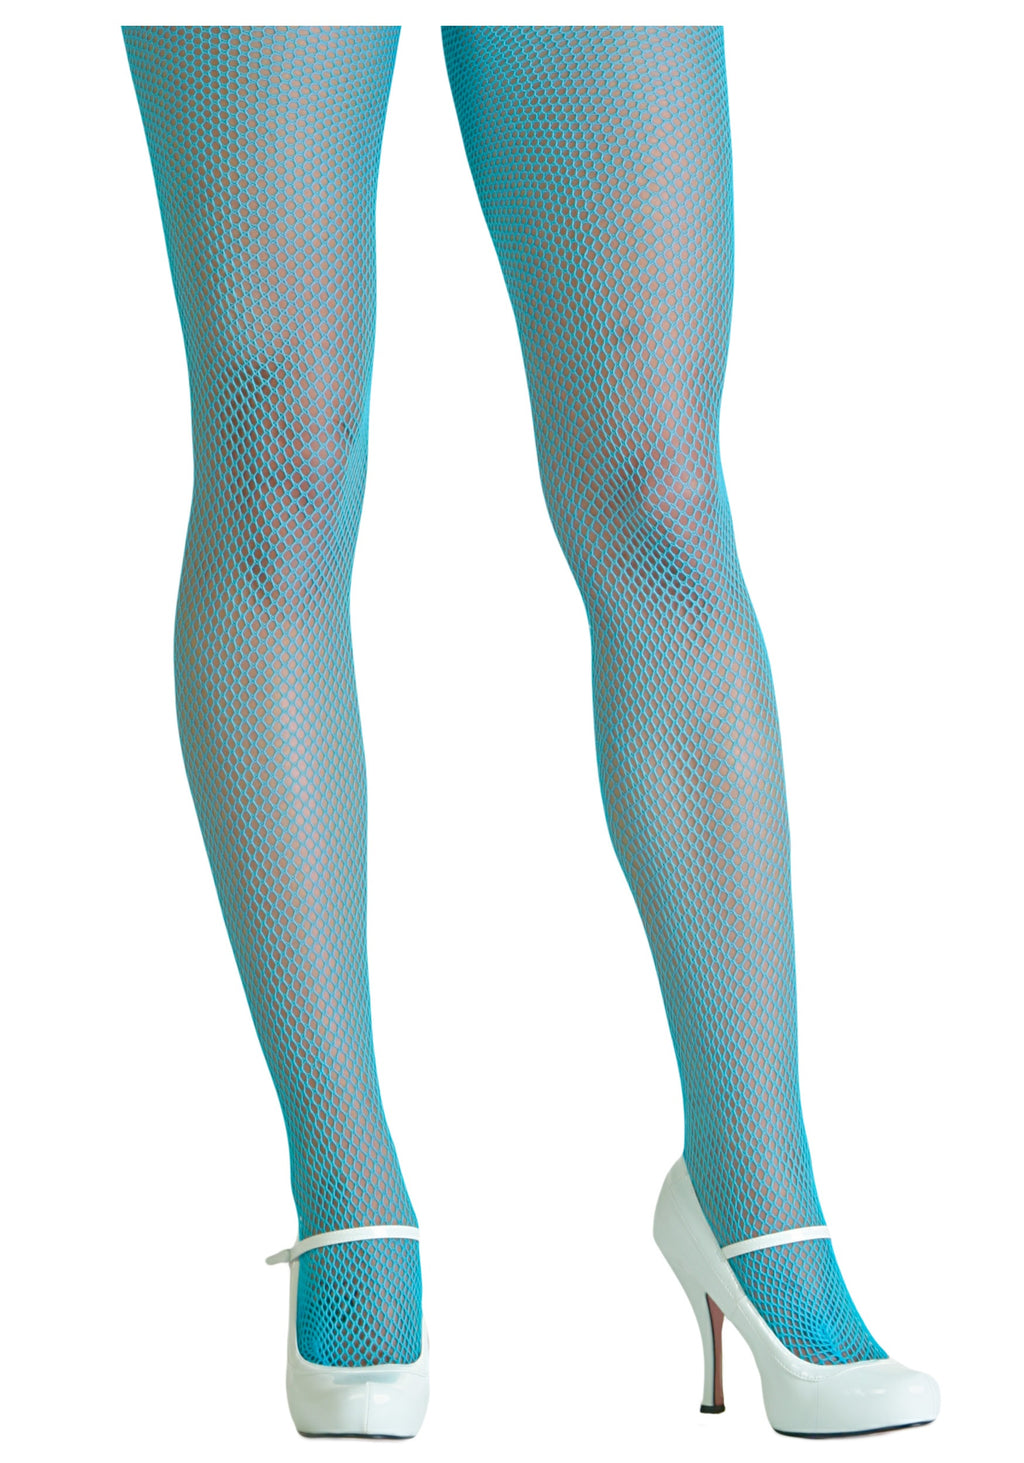 Turquoise Fishnet tights, net tights, halloween tights, by Pamela Mann Uk on Tights Etc South Africa